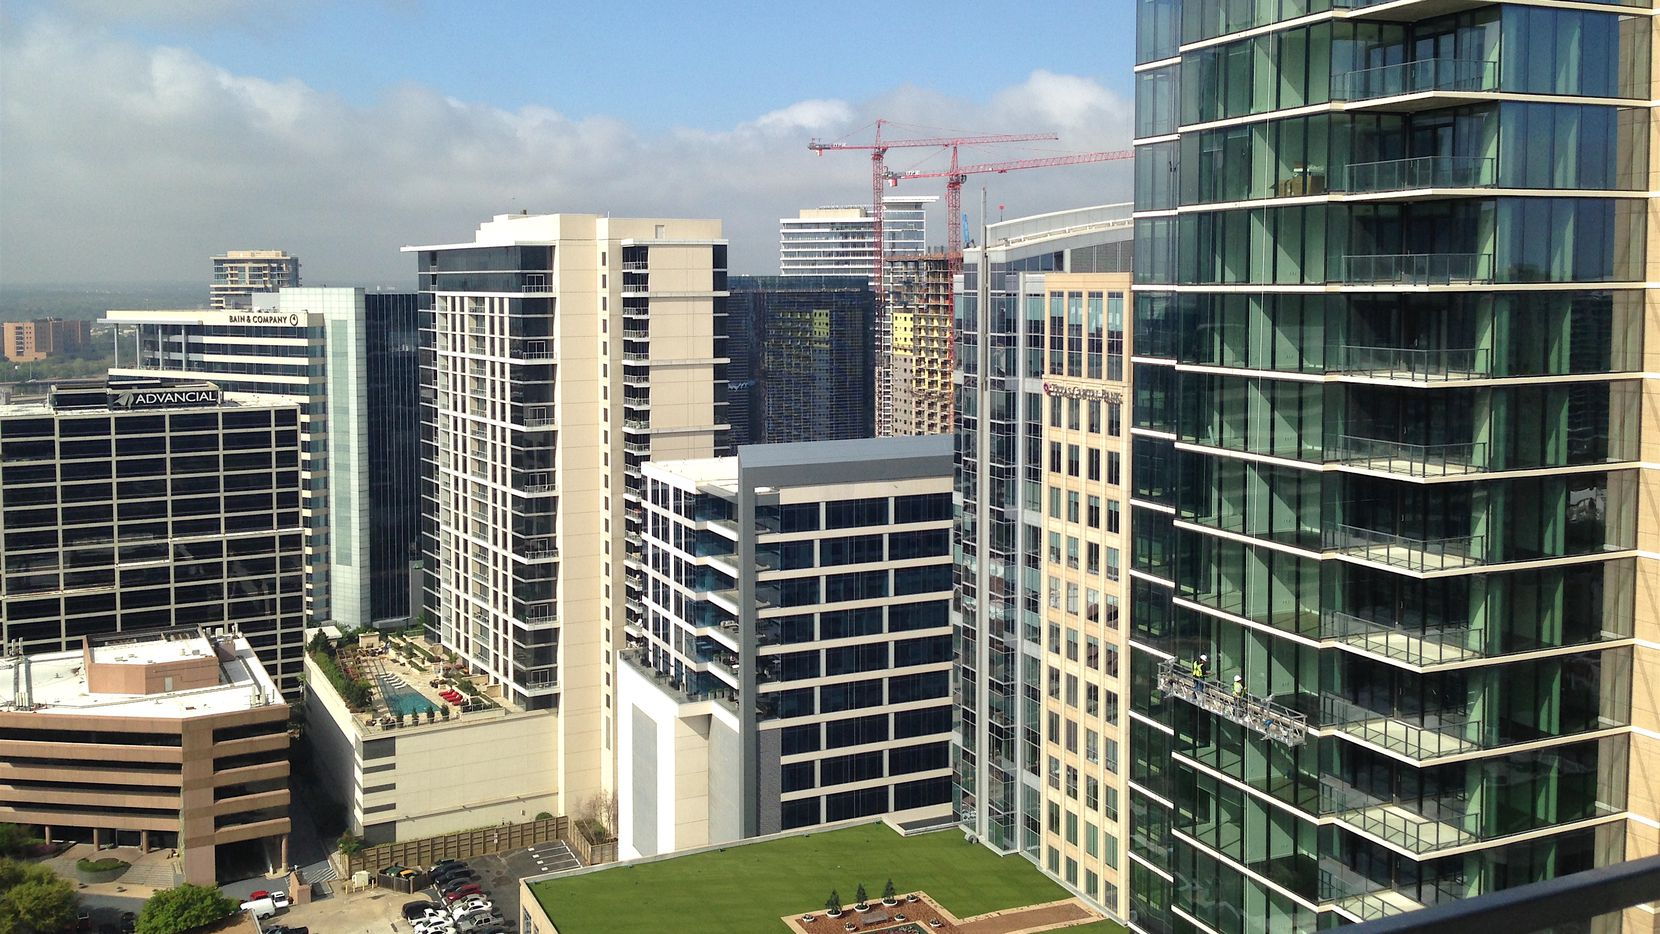 A start-up hotel firm is turning empty apartments in new high-rise residential buildings into luxury hotel spots.